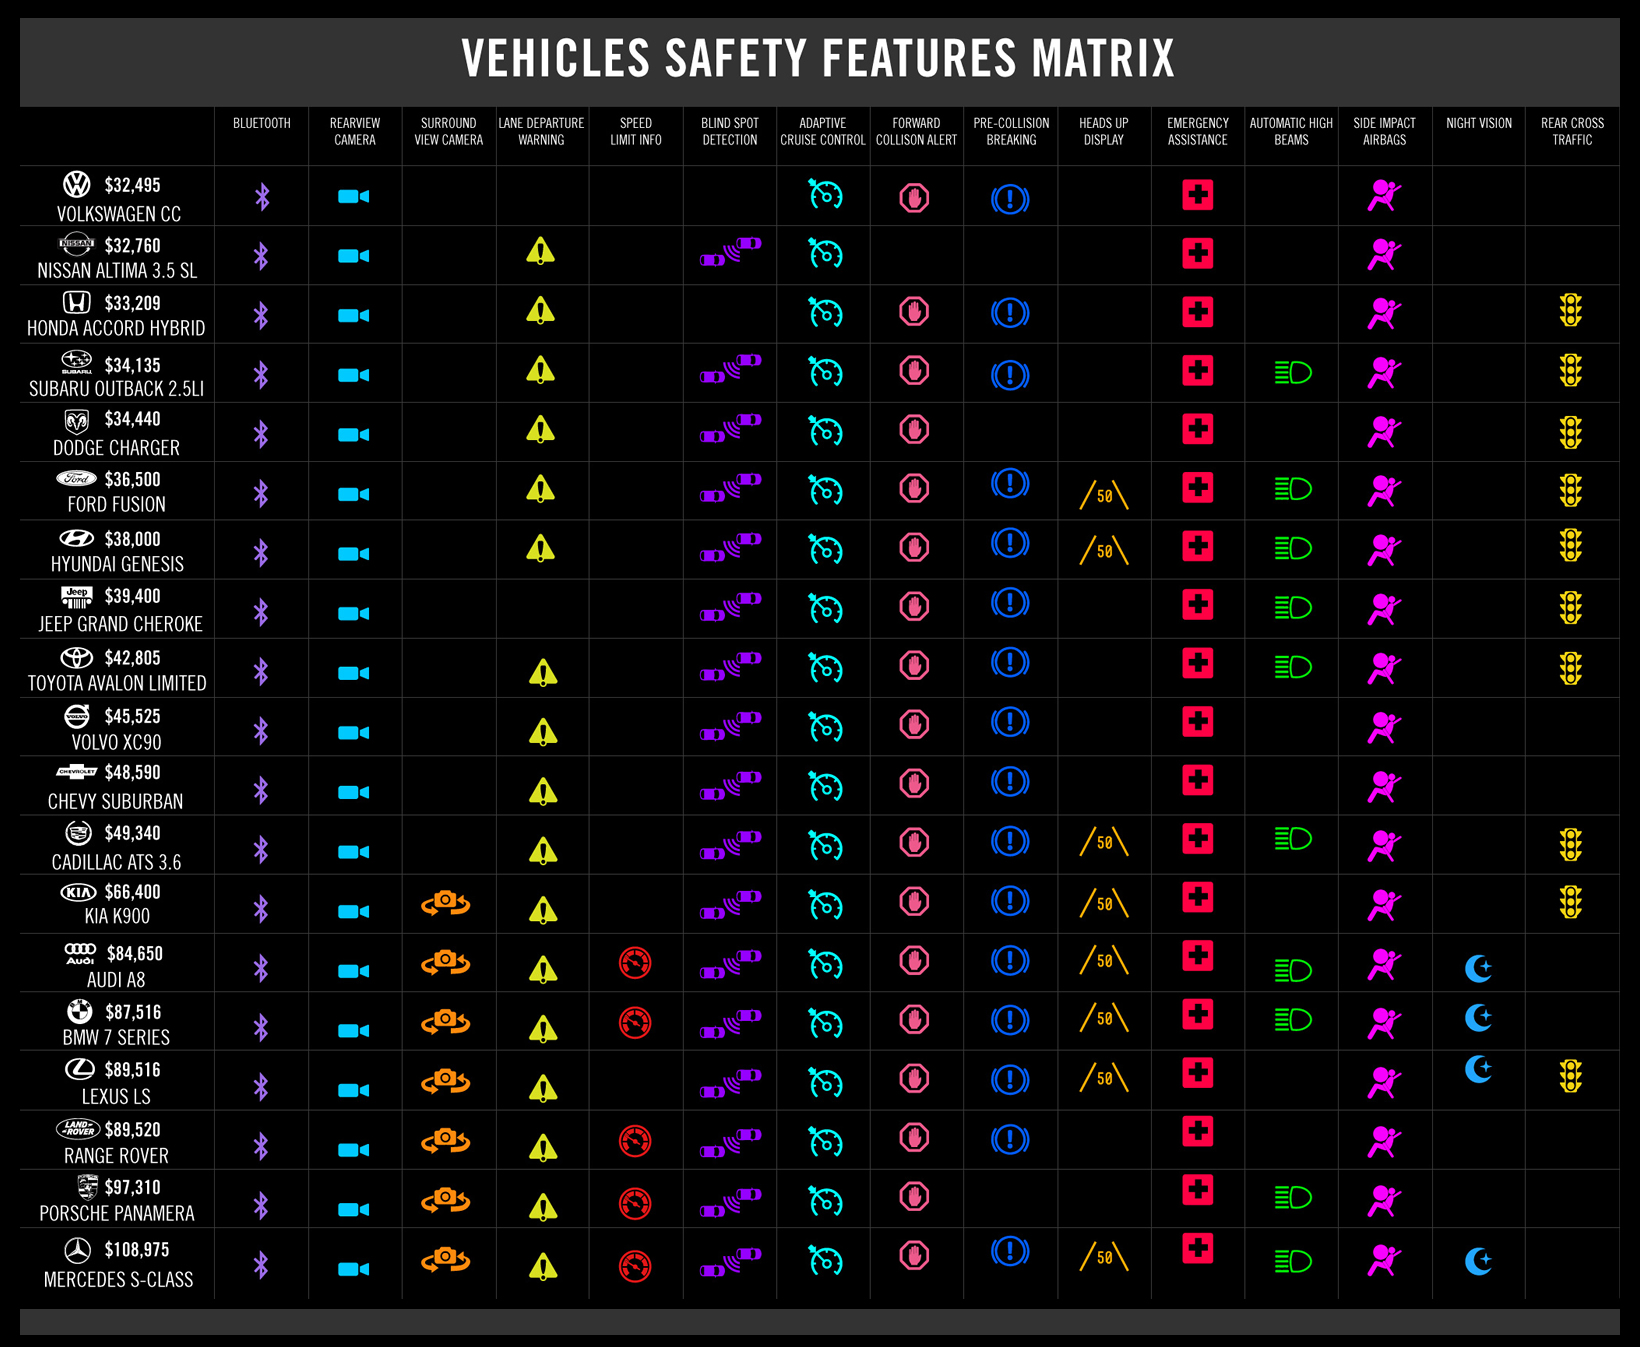 Vehicle Safety Matrix